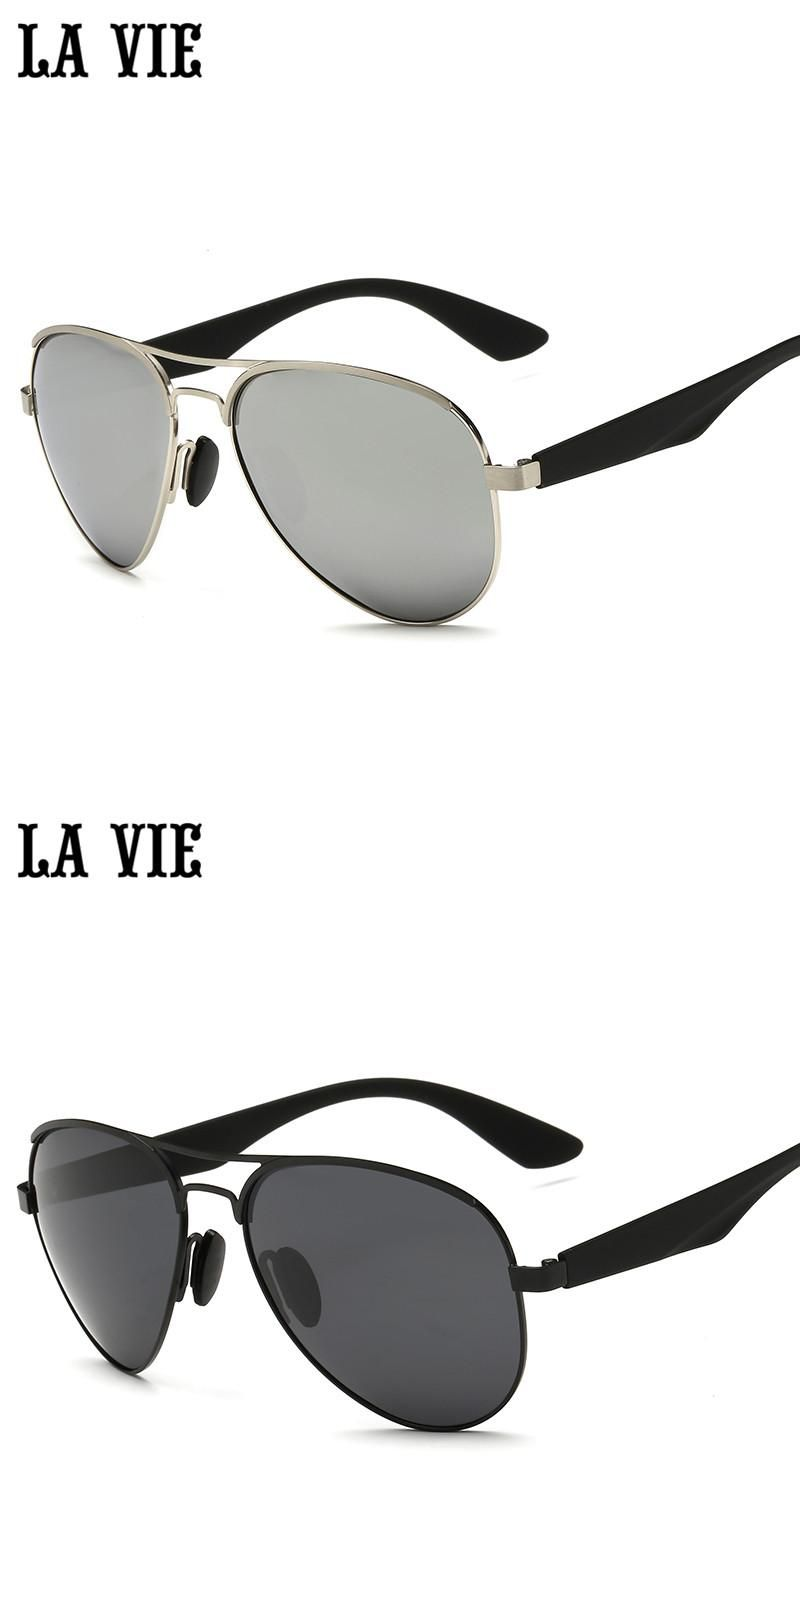 f58385bedc4 LA VIE Polarized Pilot Style Men Sunglasses Fashion Alloy Frame Design  Plastic Leg Male Coating Sun